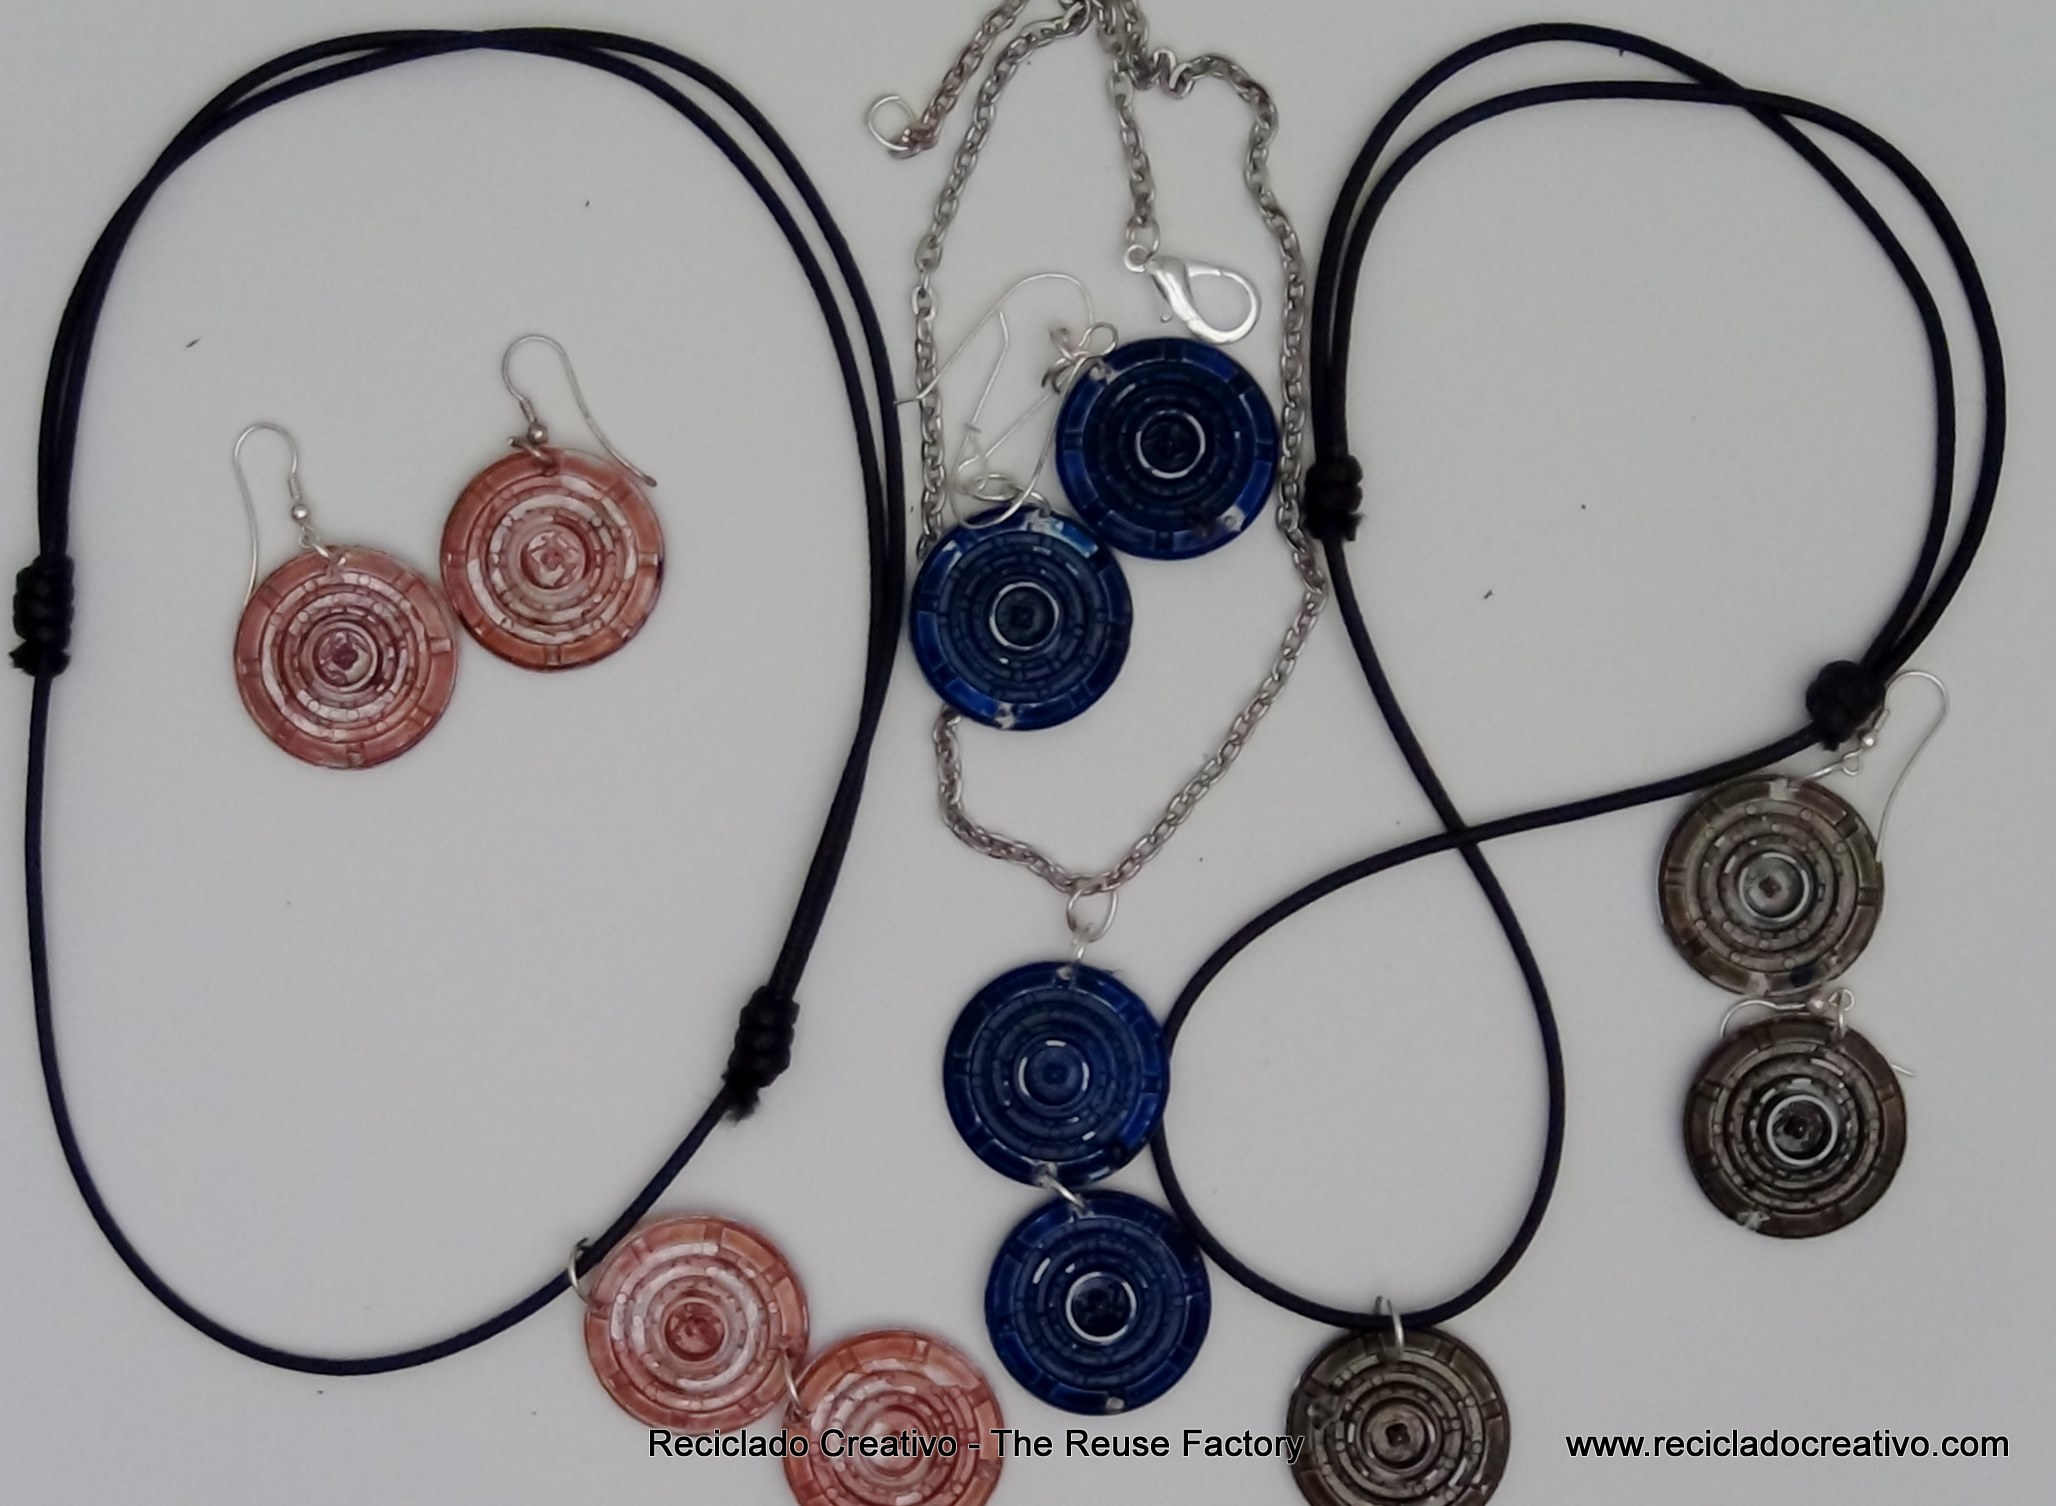 Earings and a Necklaces recycling filters – Dolce Gusto Coffee Capsules. Pendientes y collares con filtros de cápsulas de café Dolce Gusto